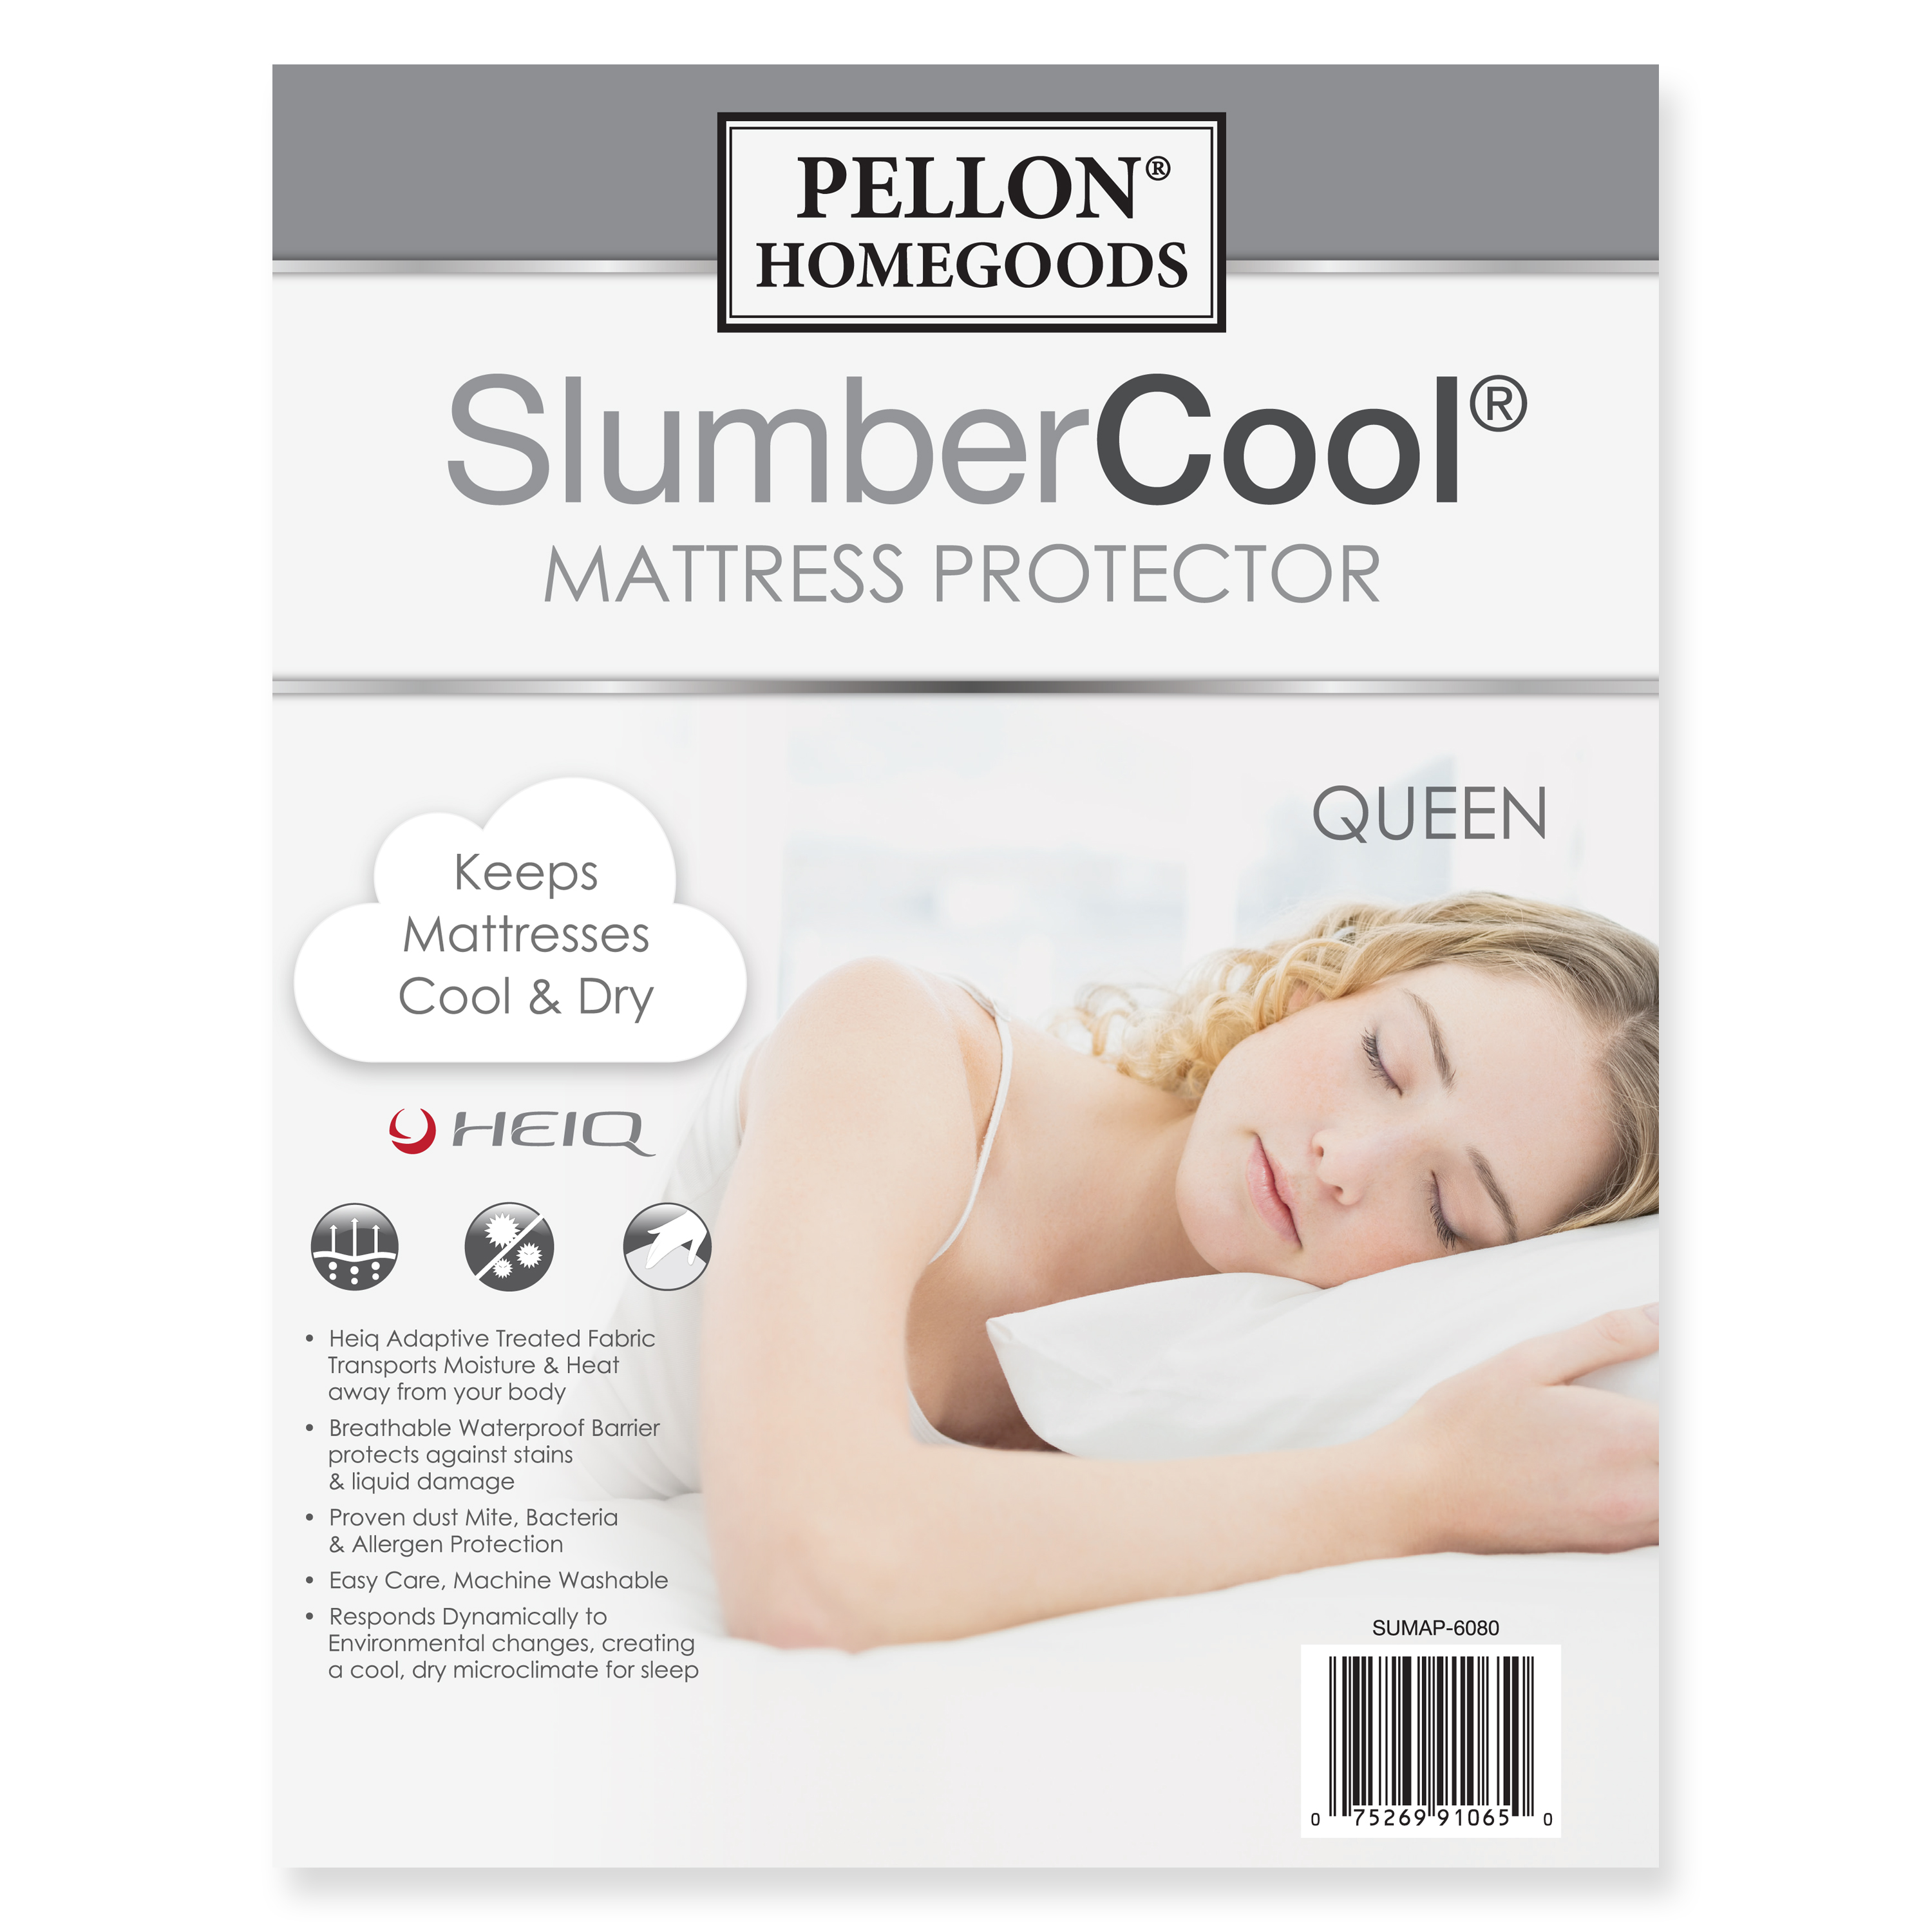 protector foam com mattress sealy walmart waterproof memory fitted cotton washable posturepedic king ip